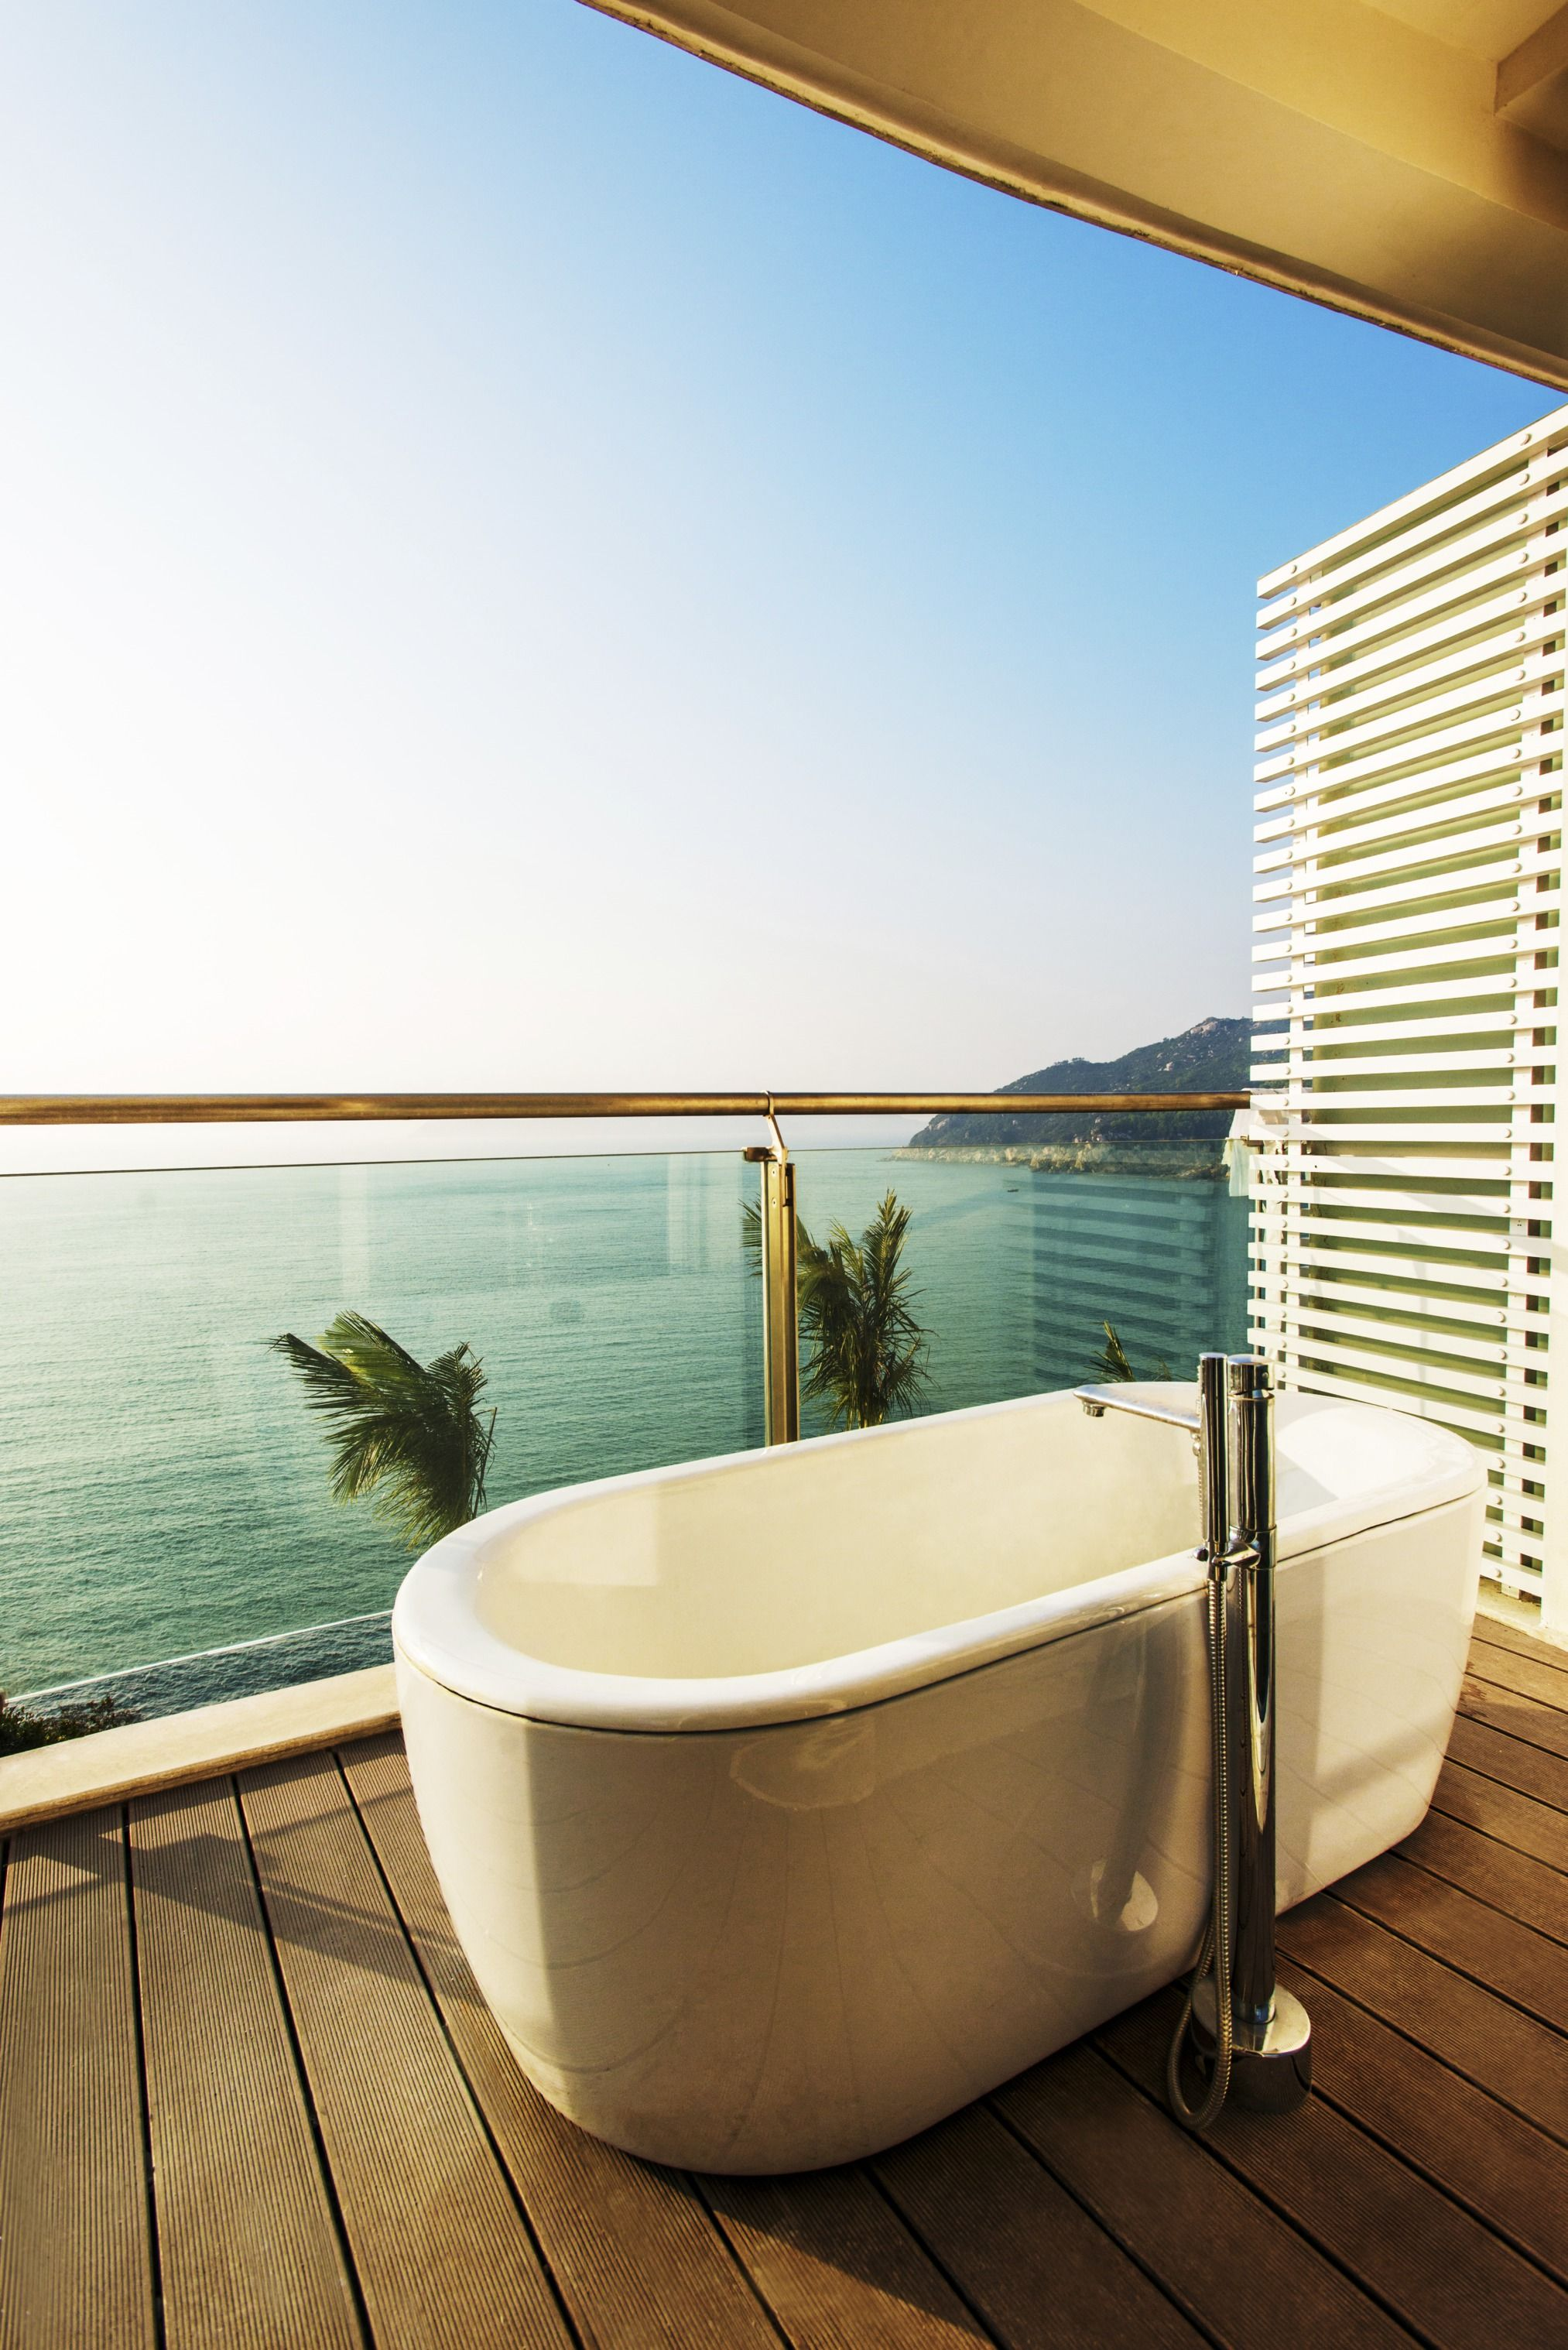 A Private Outdoor Bathtub, Perfect For Any Home With A Beautiful Balcony  View. This